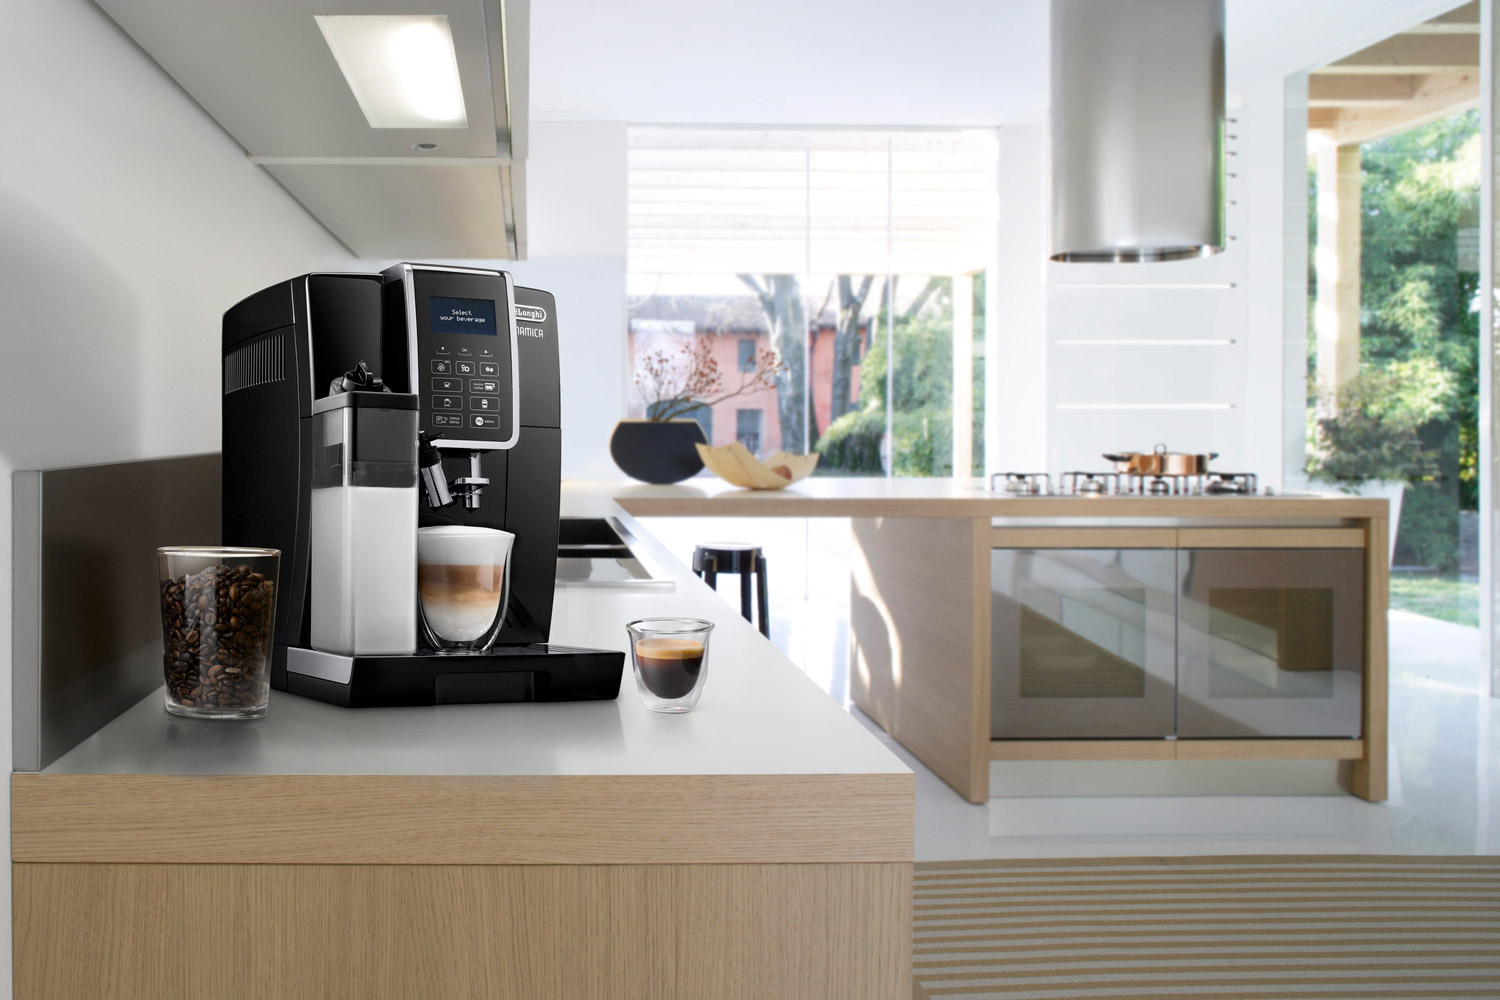 a coffee machine placed on a table